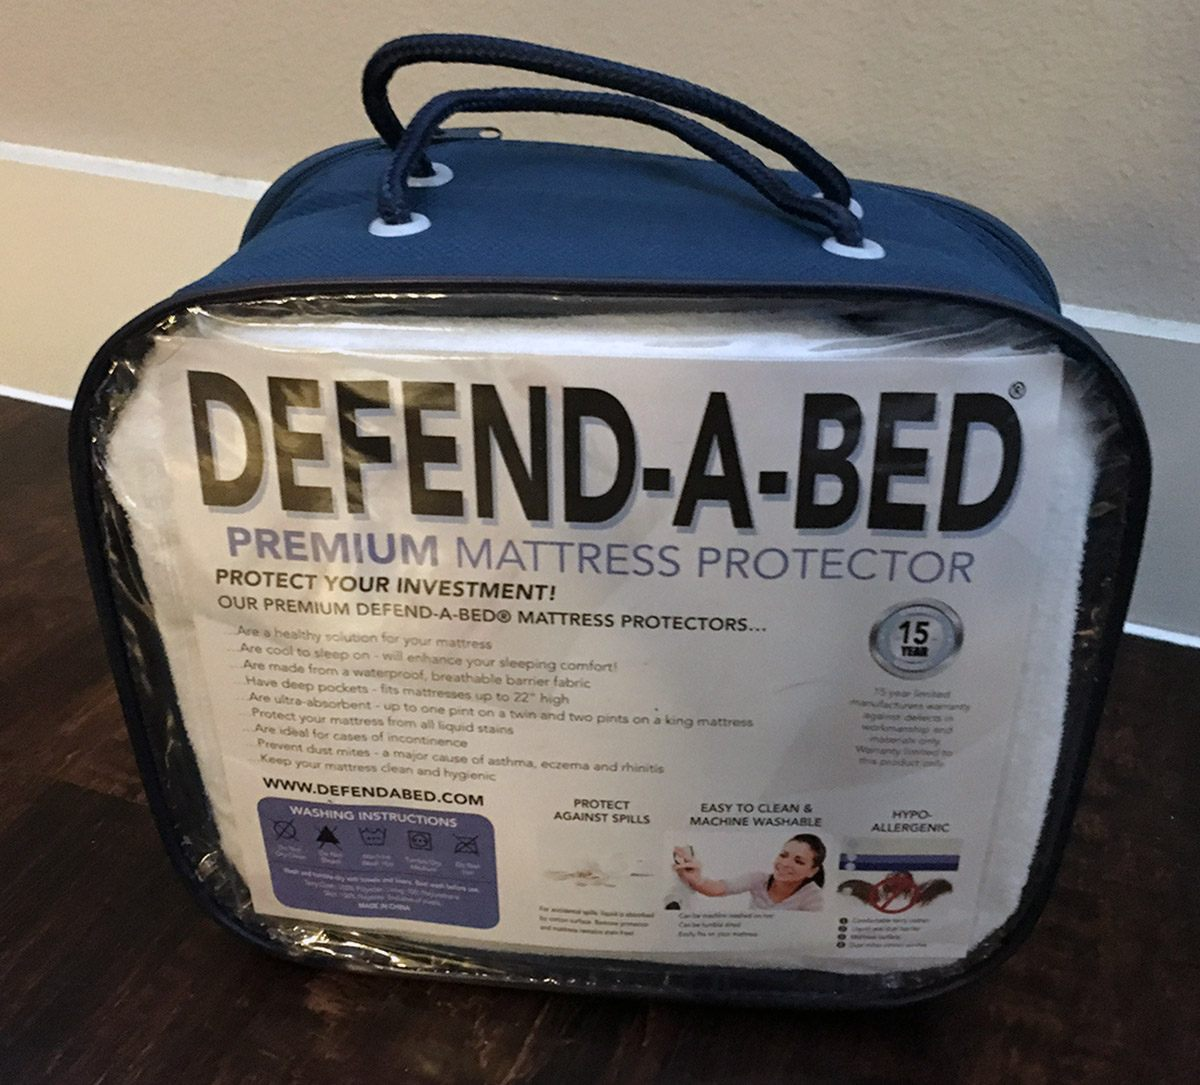 Defend-A-Bed Premium Mattress Protector Review